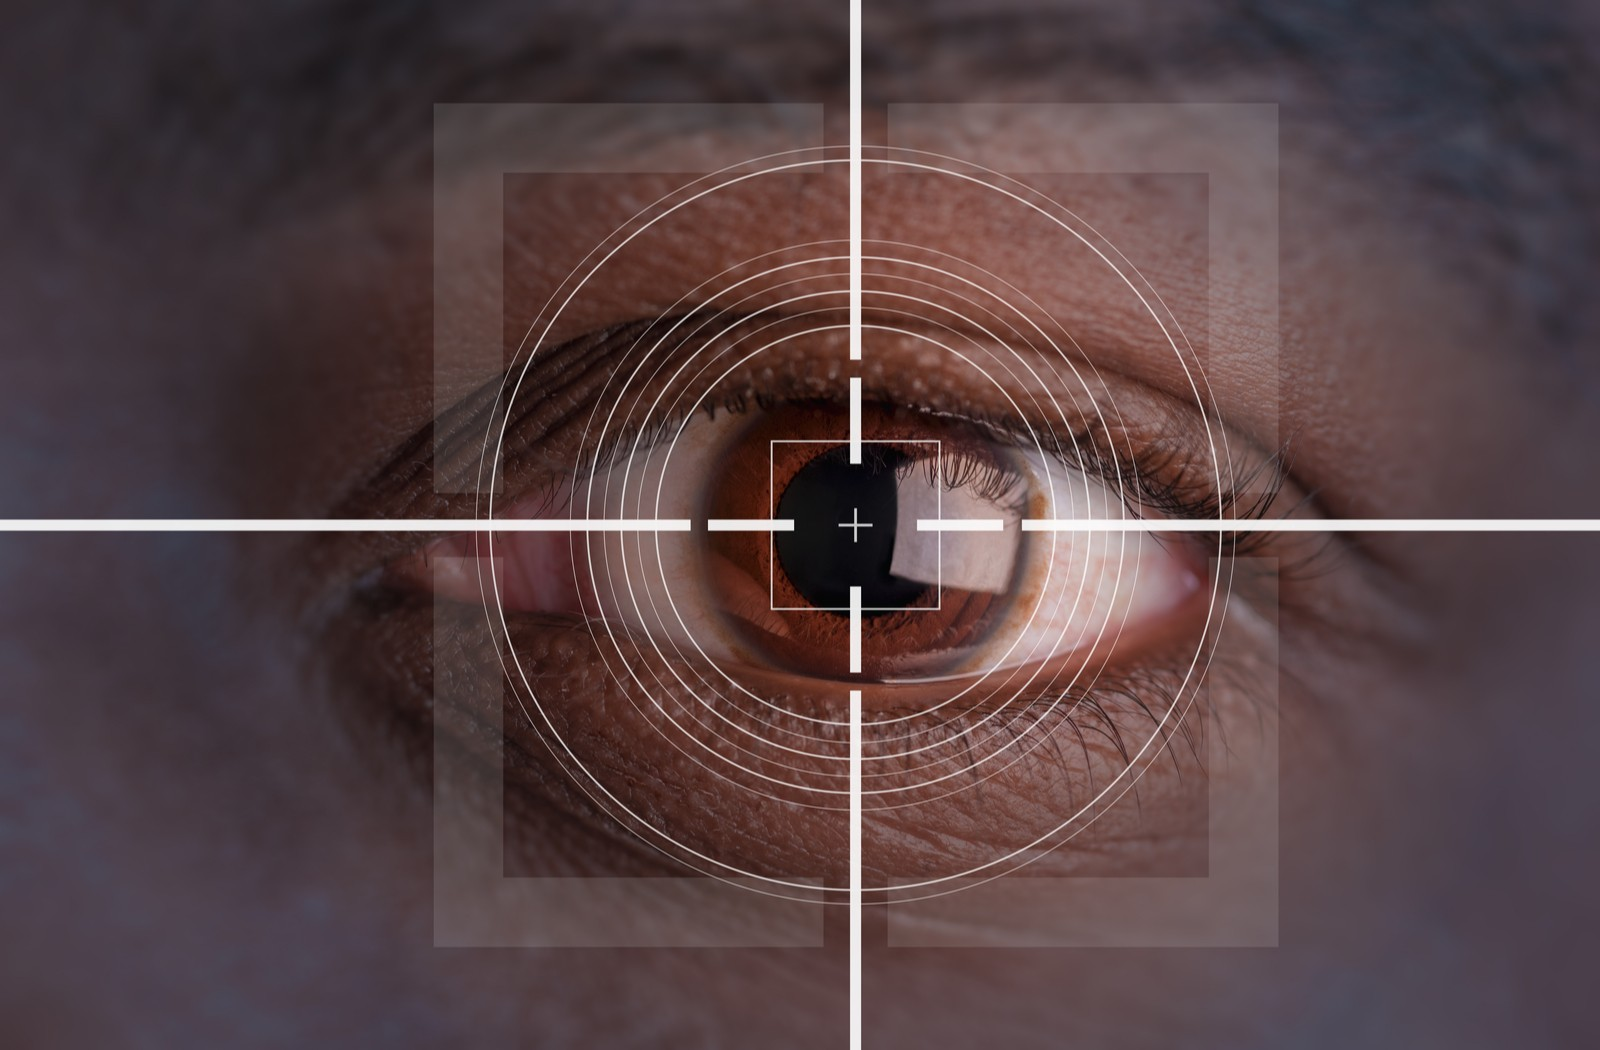 Close-up of one healthy human eye with a crosshair overlaid and targeted right at the center of the pupil.